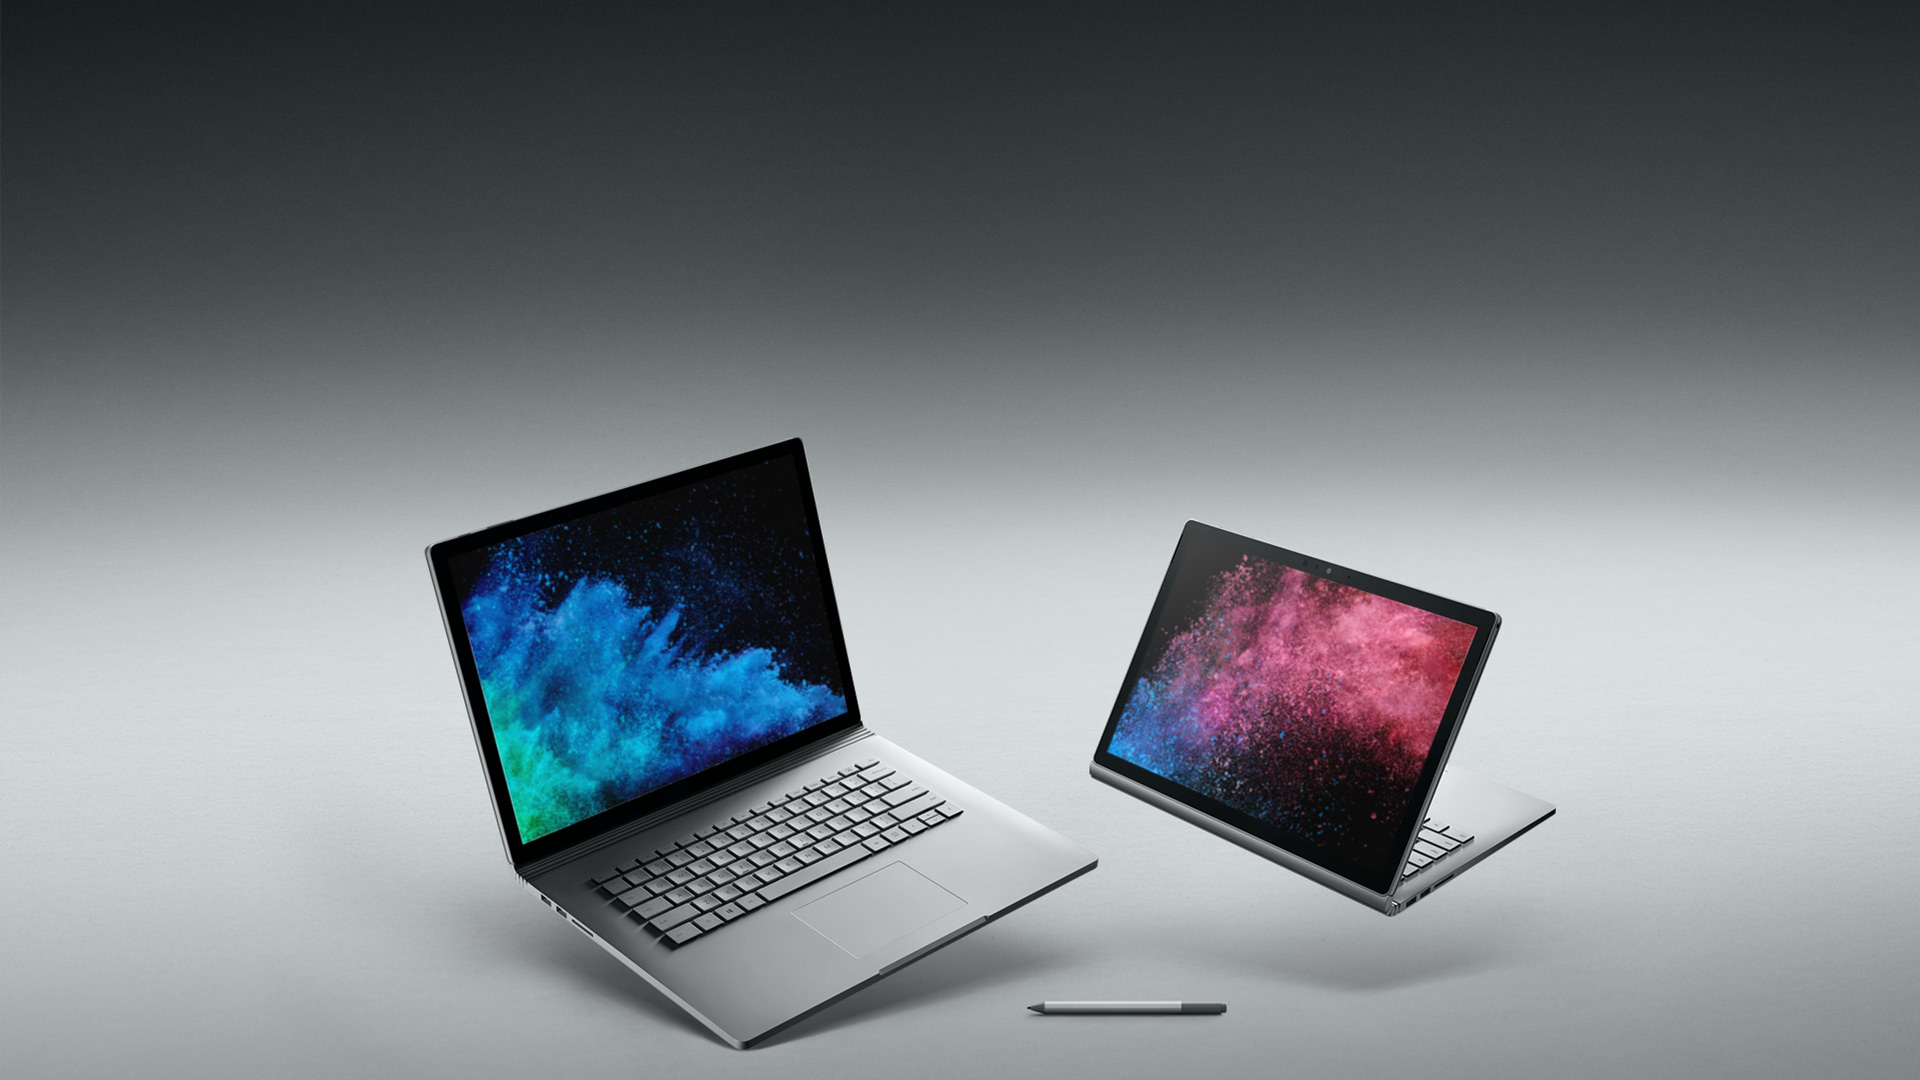 Surface Book 2 15 inches and Surface Book 2 13.5 inches